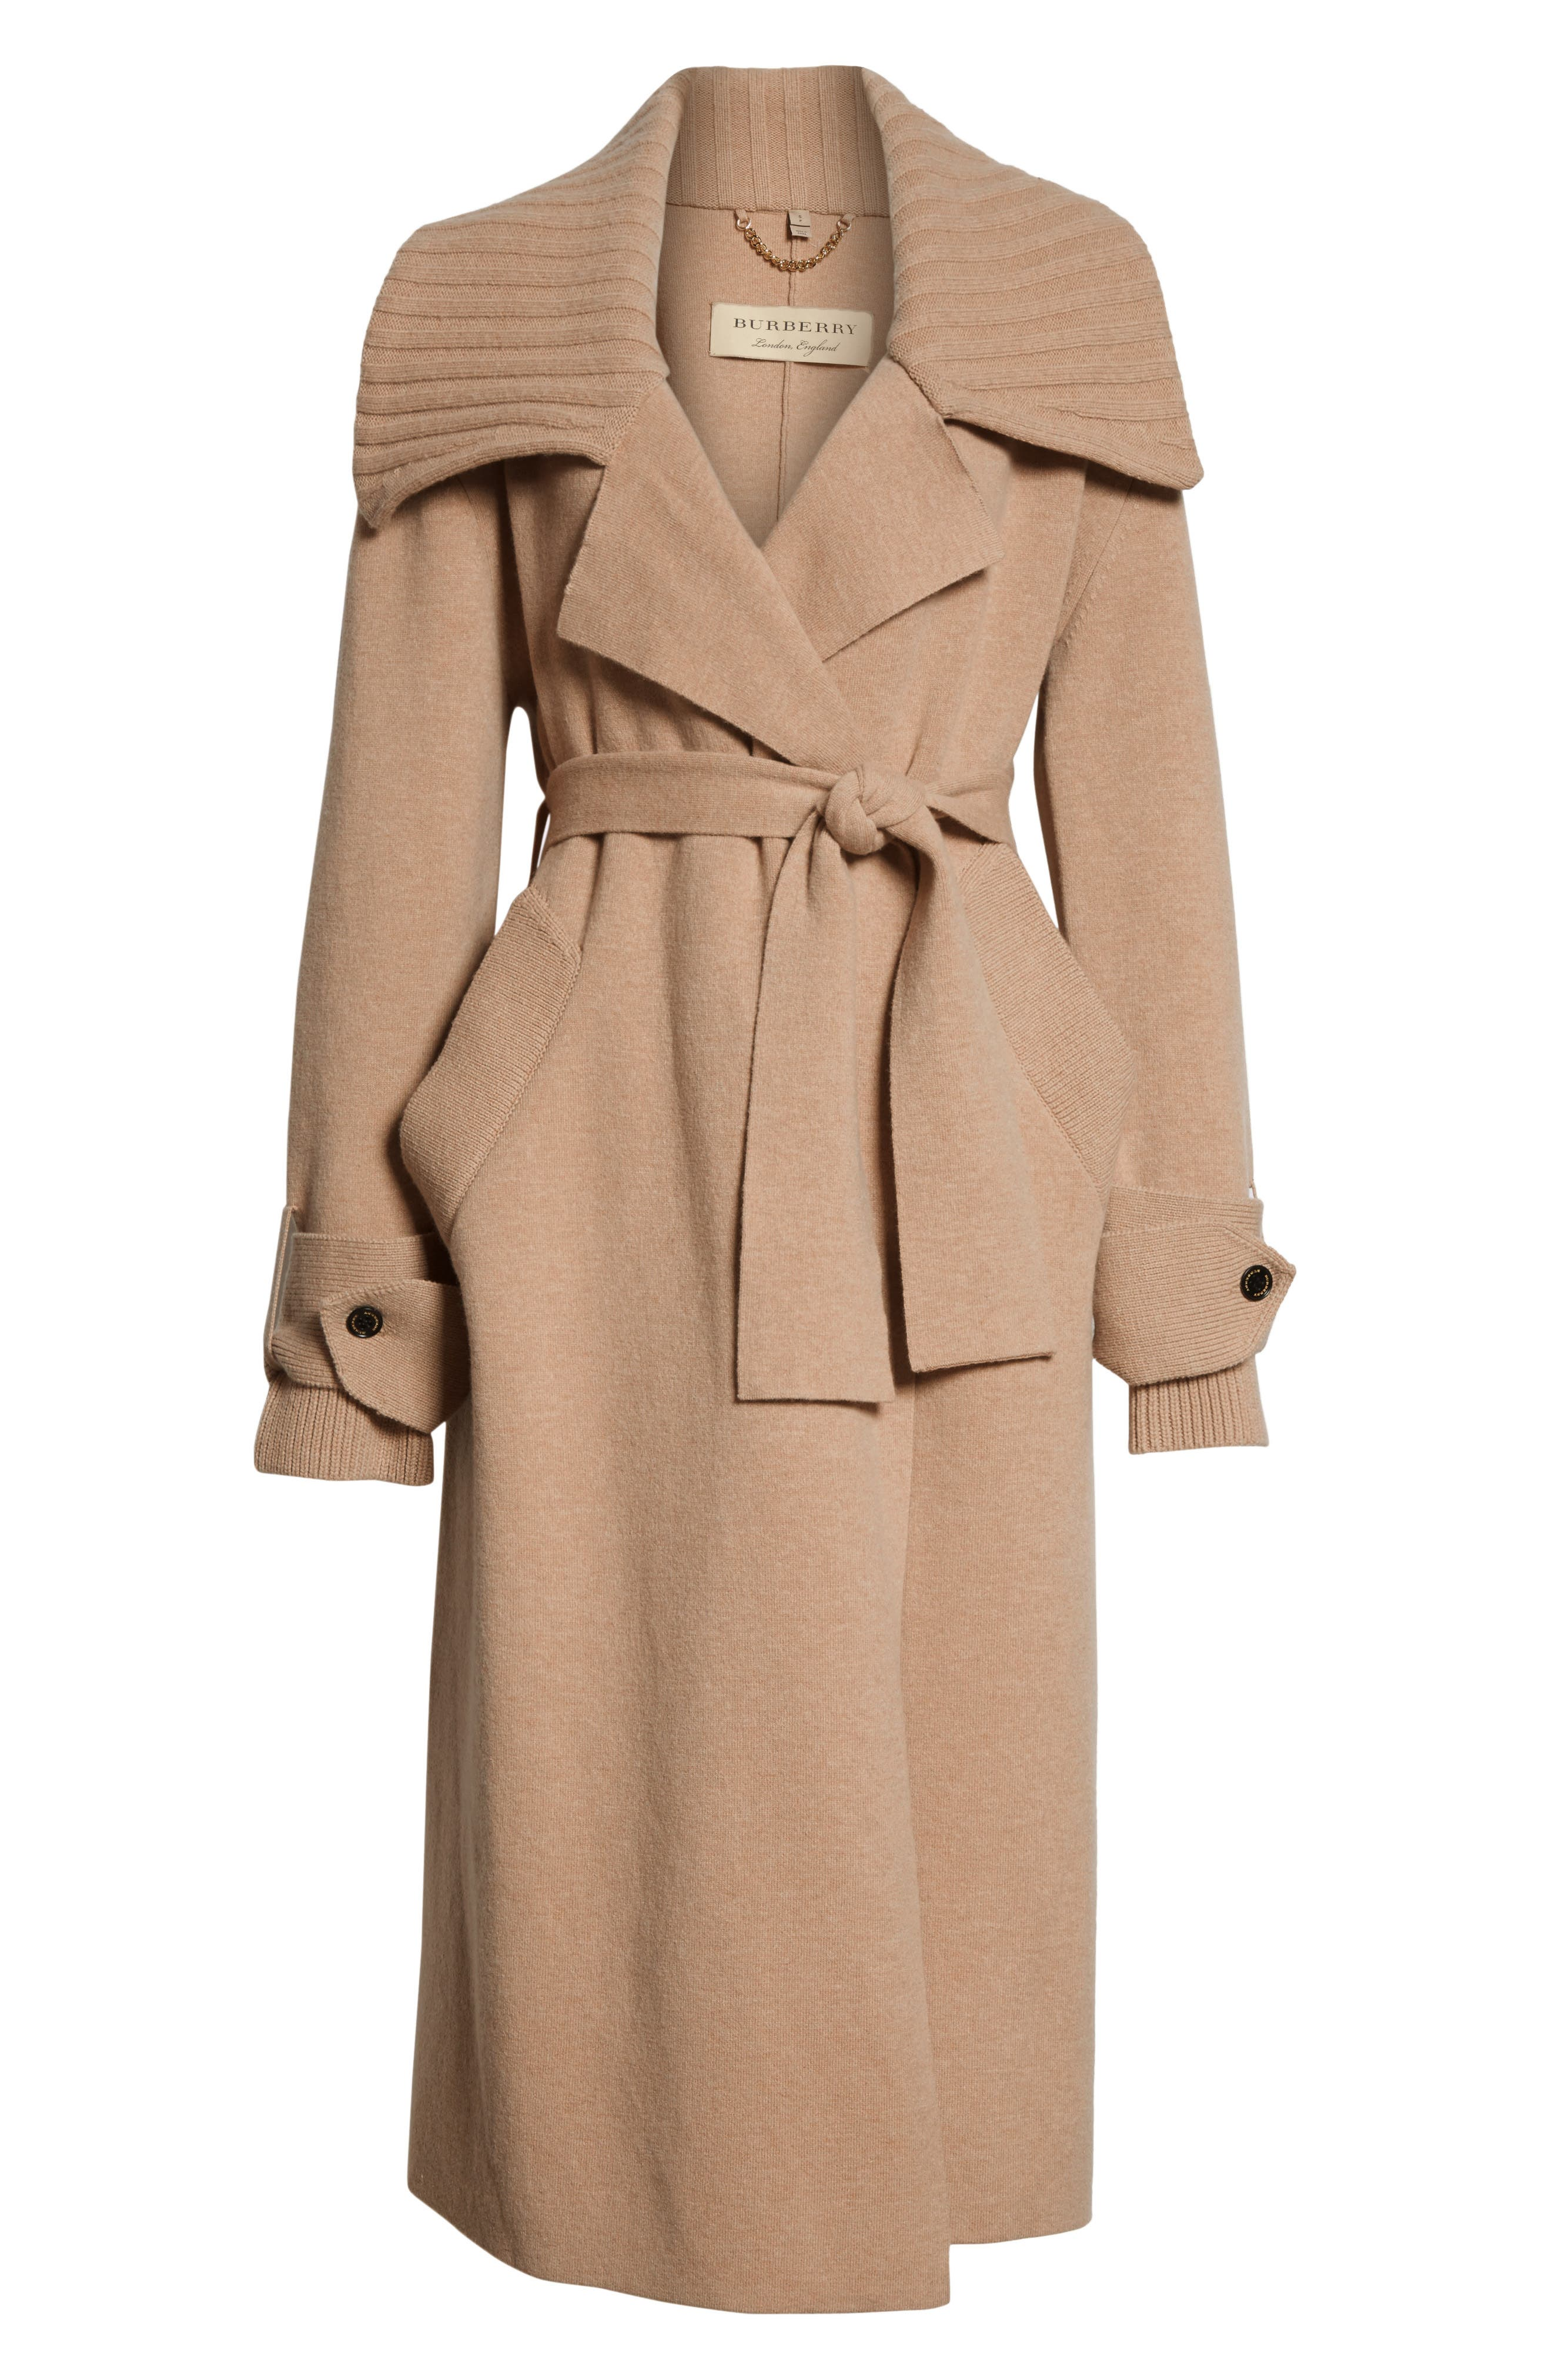 BURBERRY, Piota Wool Blend Knit Trench Coat, Alternate thumbnail 6, color, CAMEL